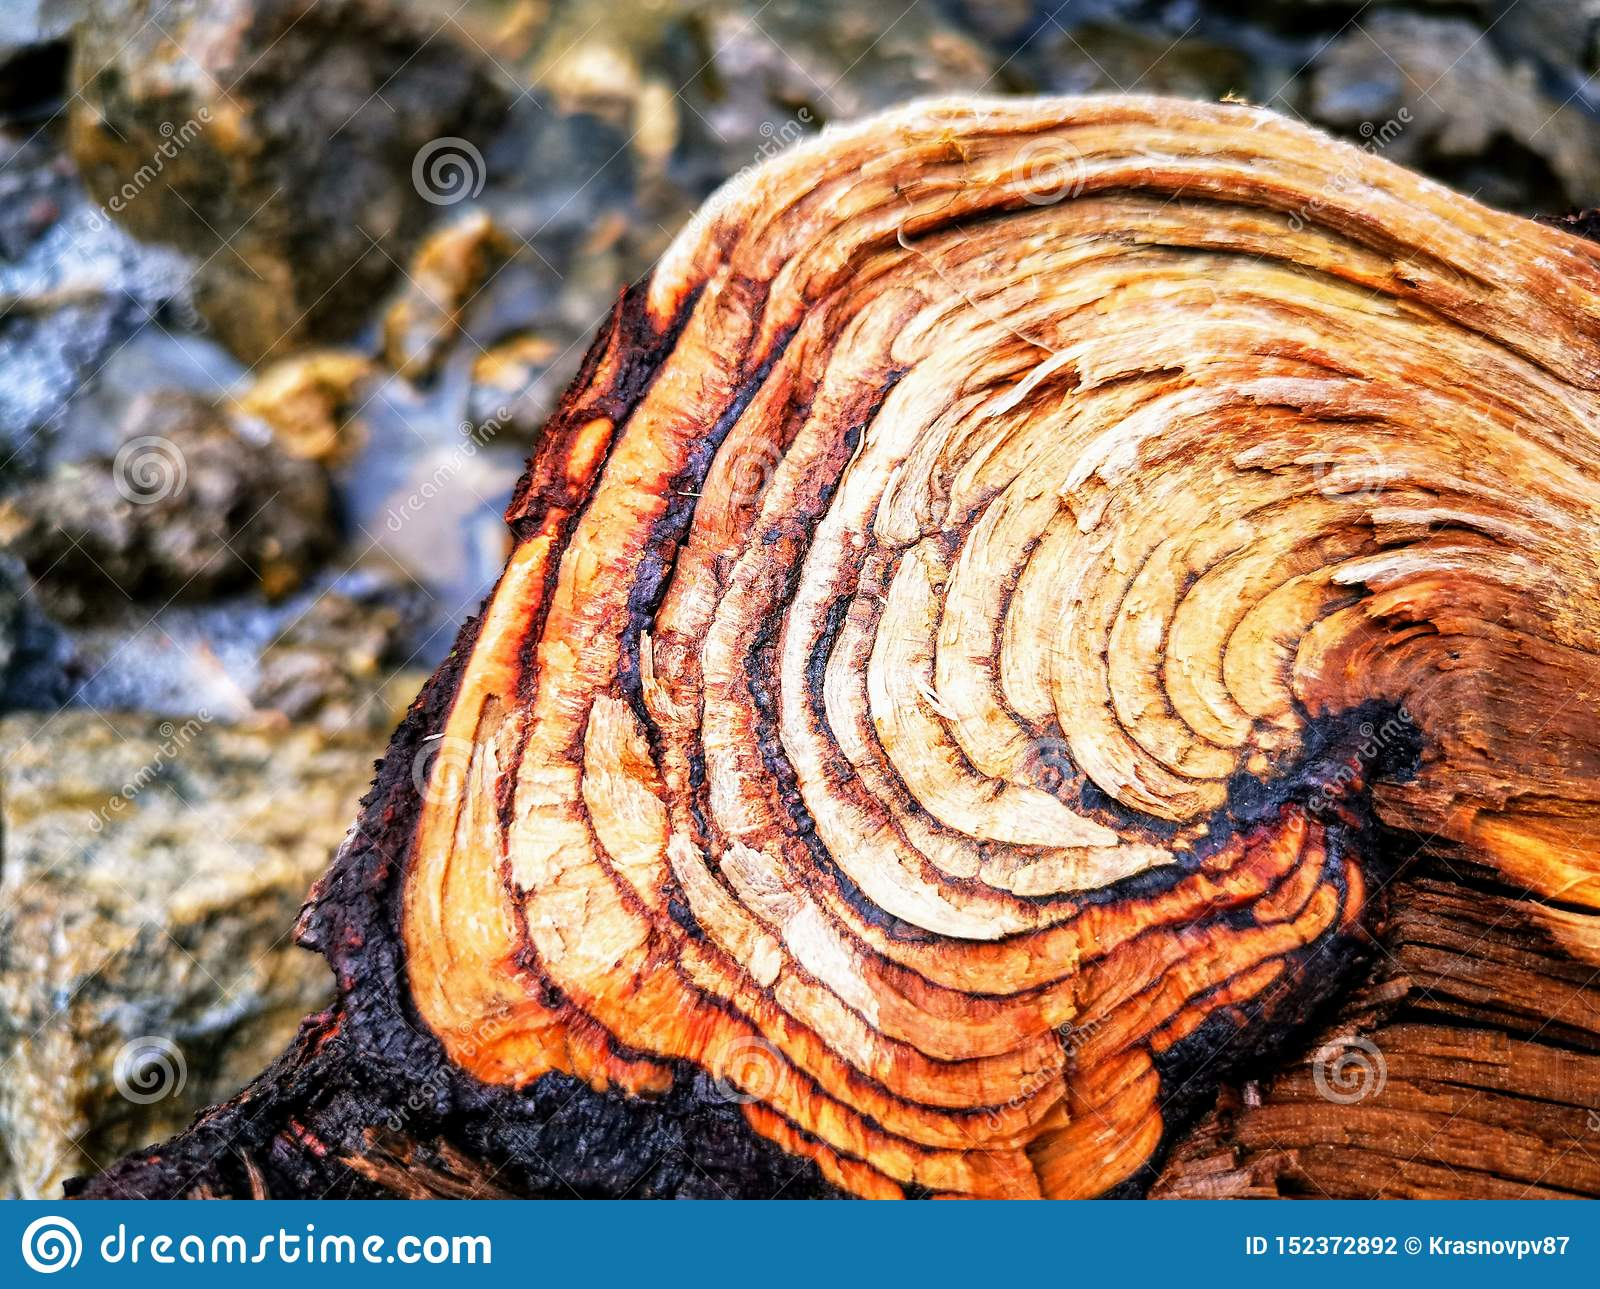 Just a log.